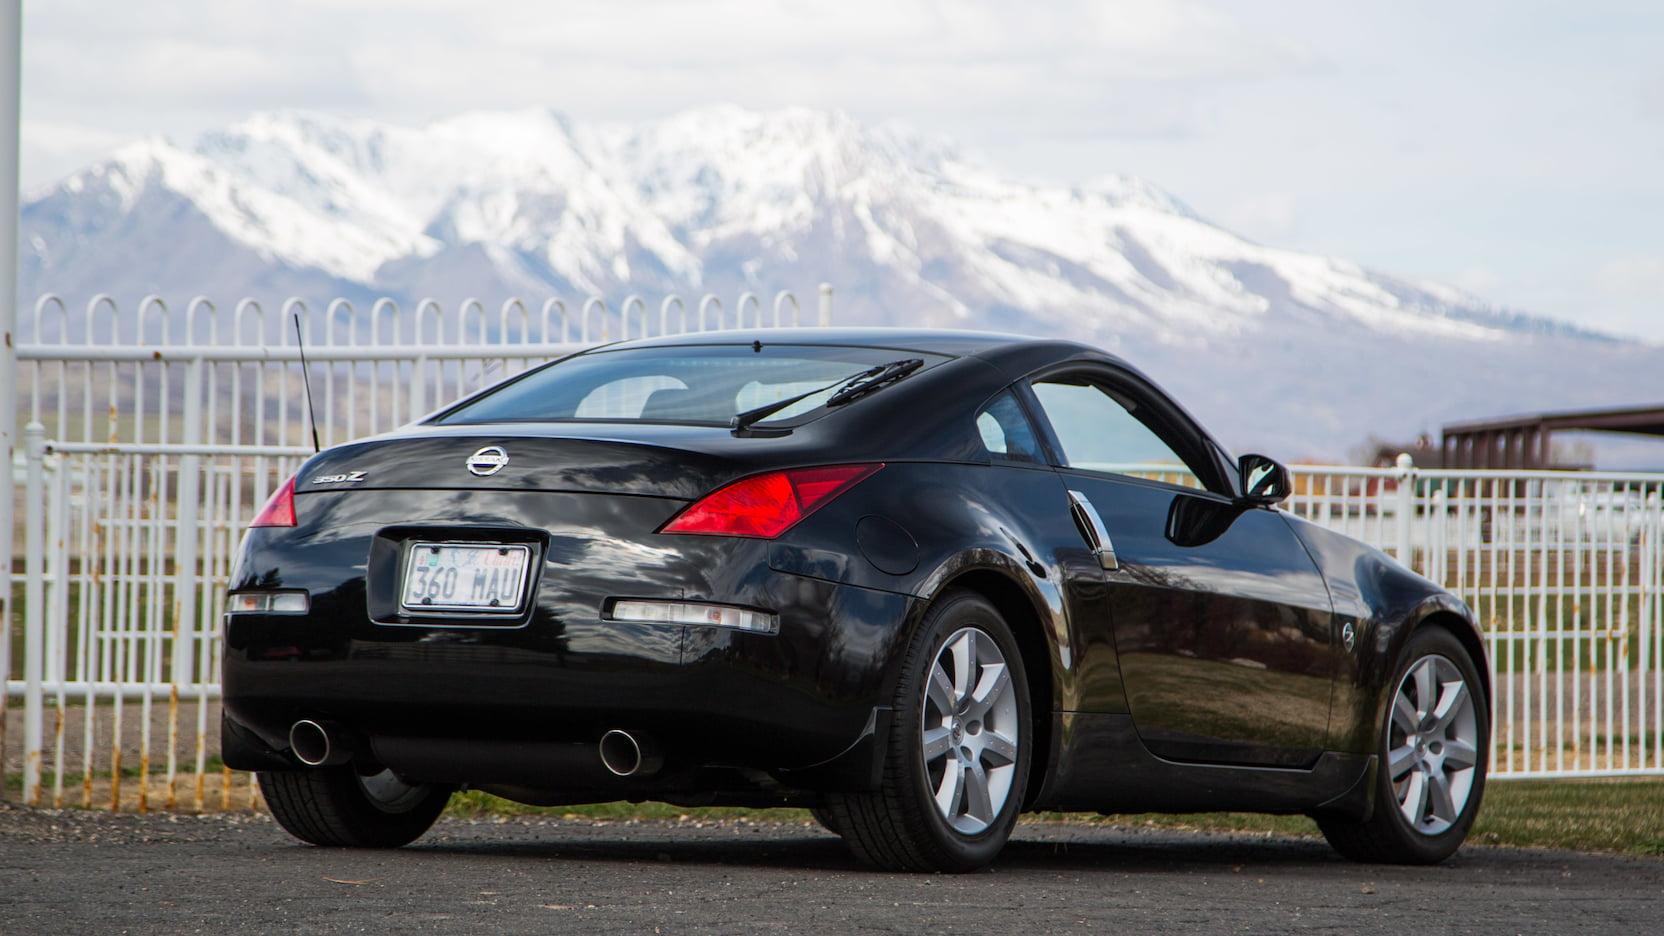 2003 Nissan 350Z rear three-quarter